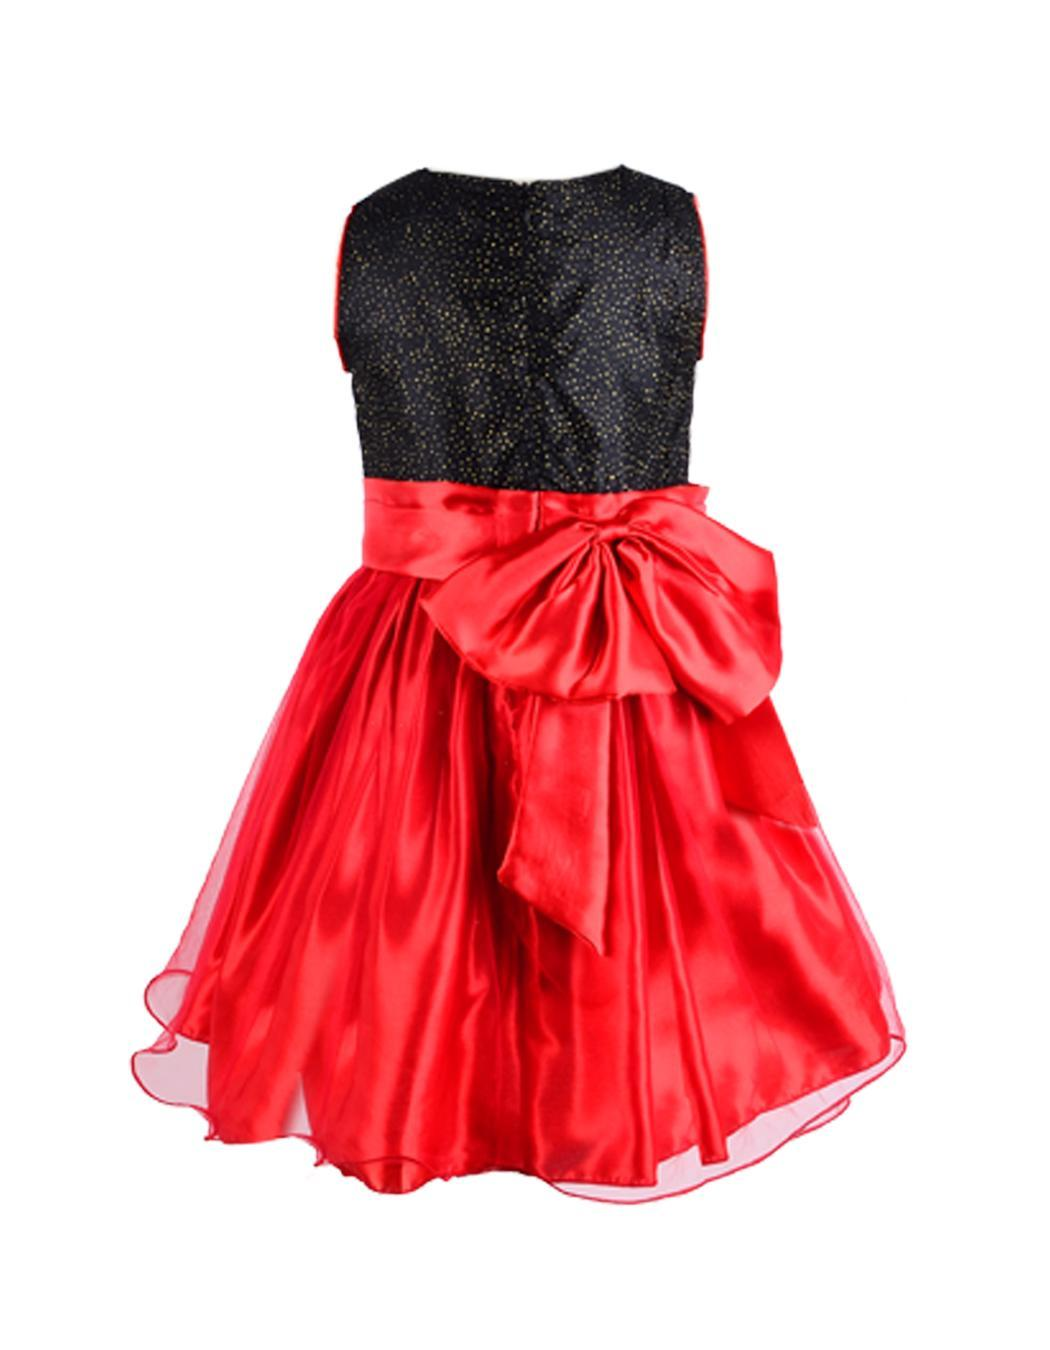 Cyber Party Baby Girls Kids Dresses Princess Clothing With